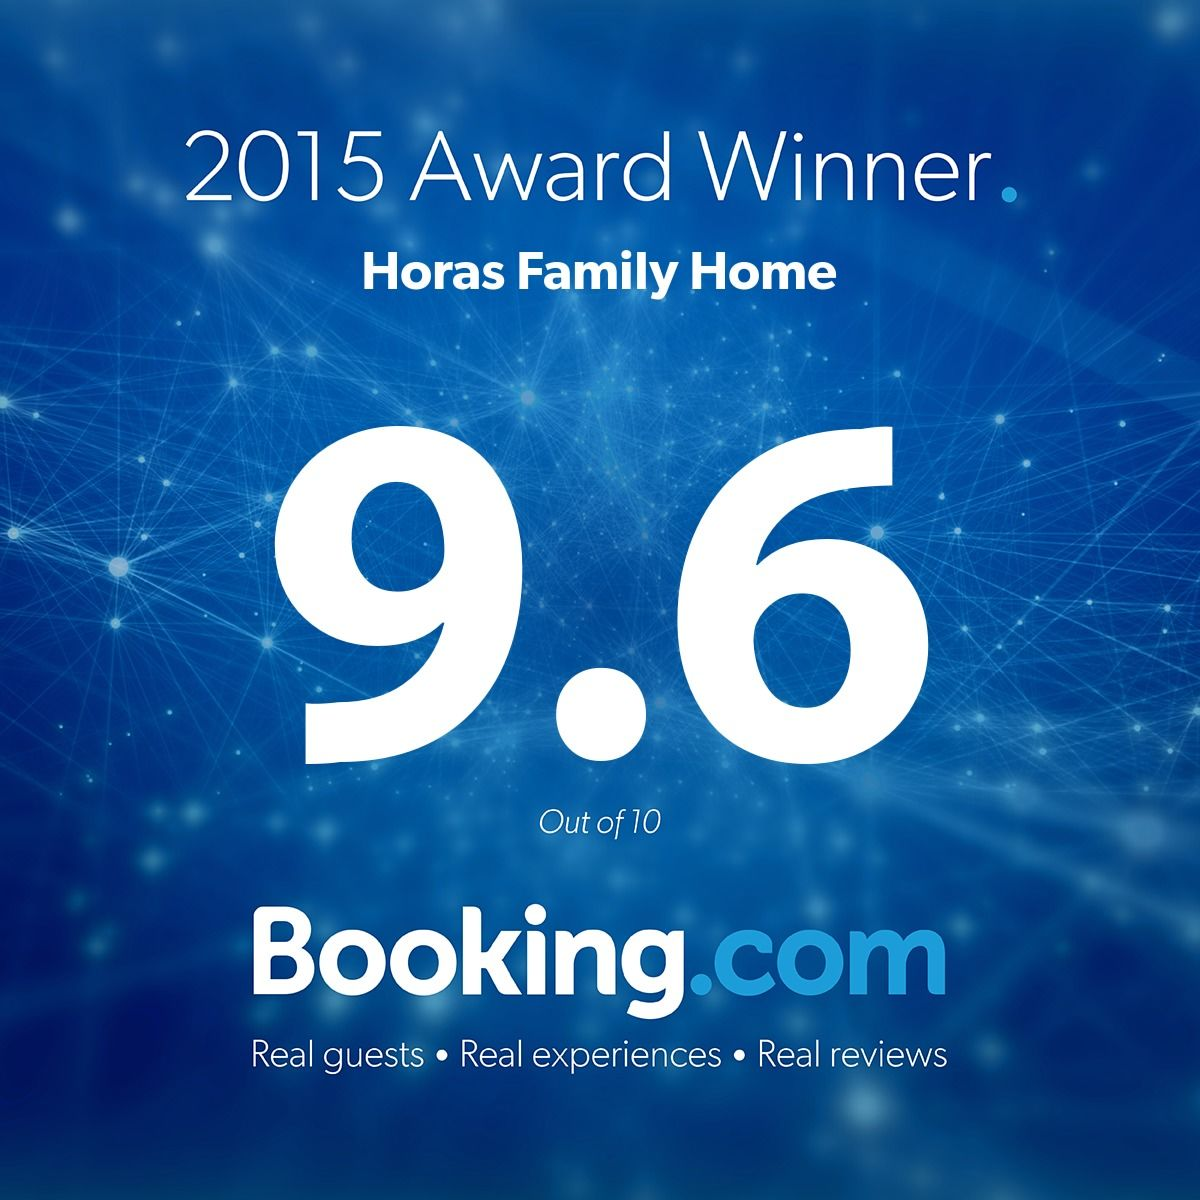 Booking.com 2015 award